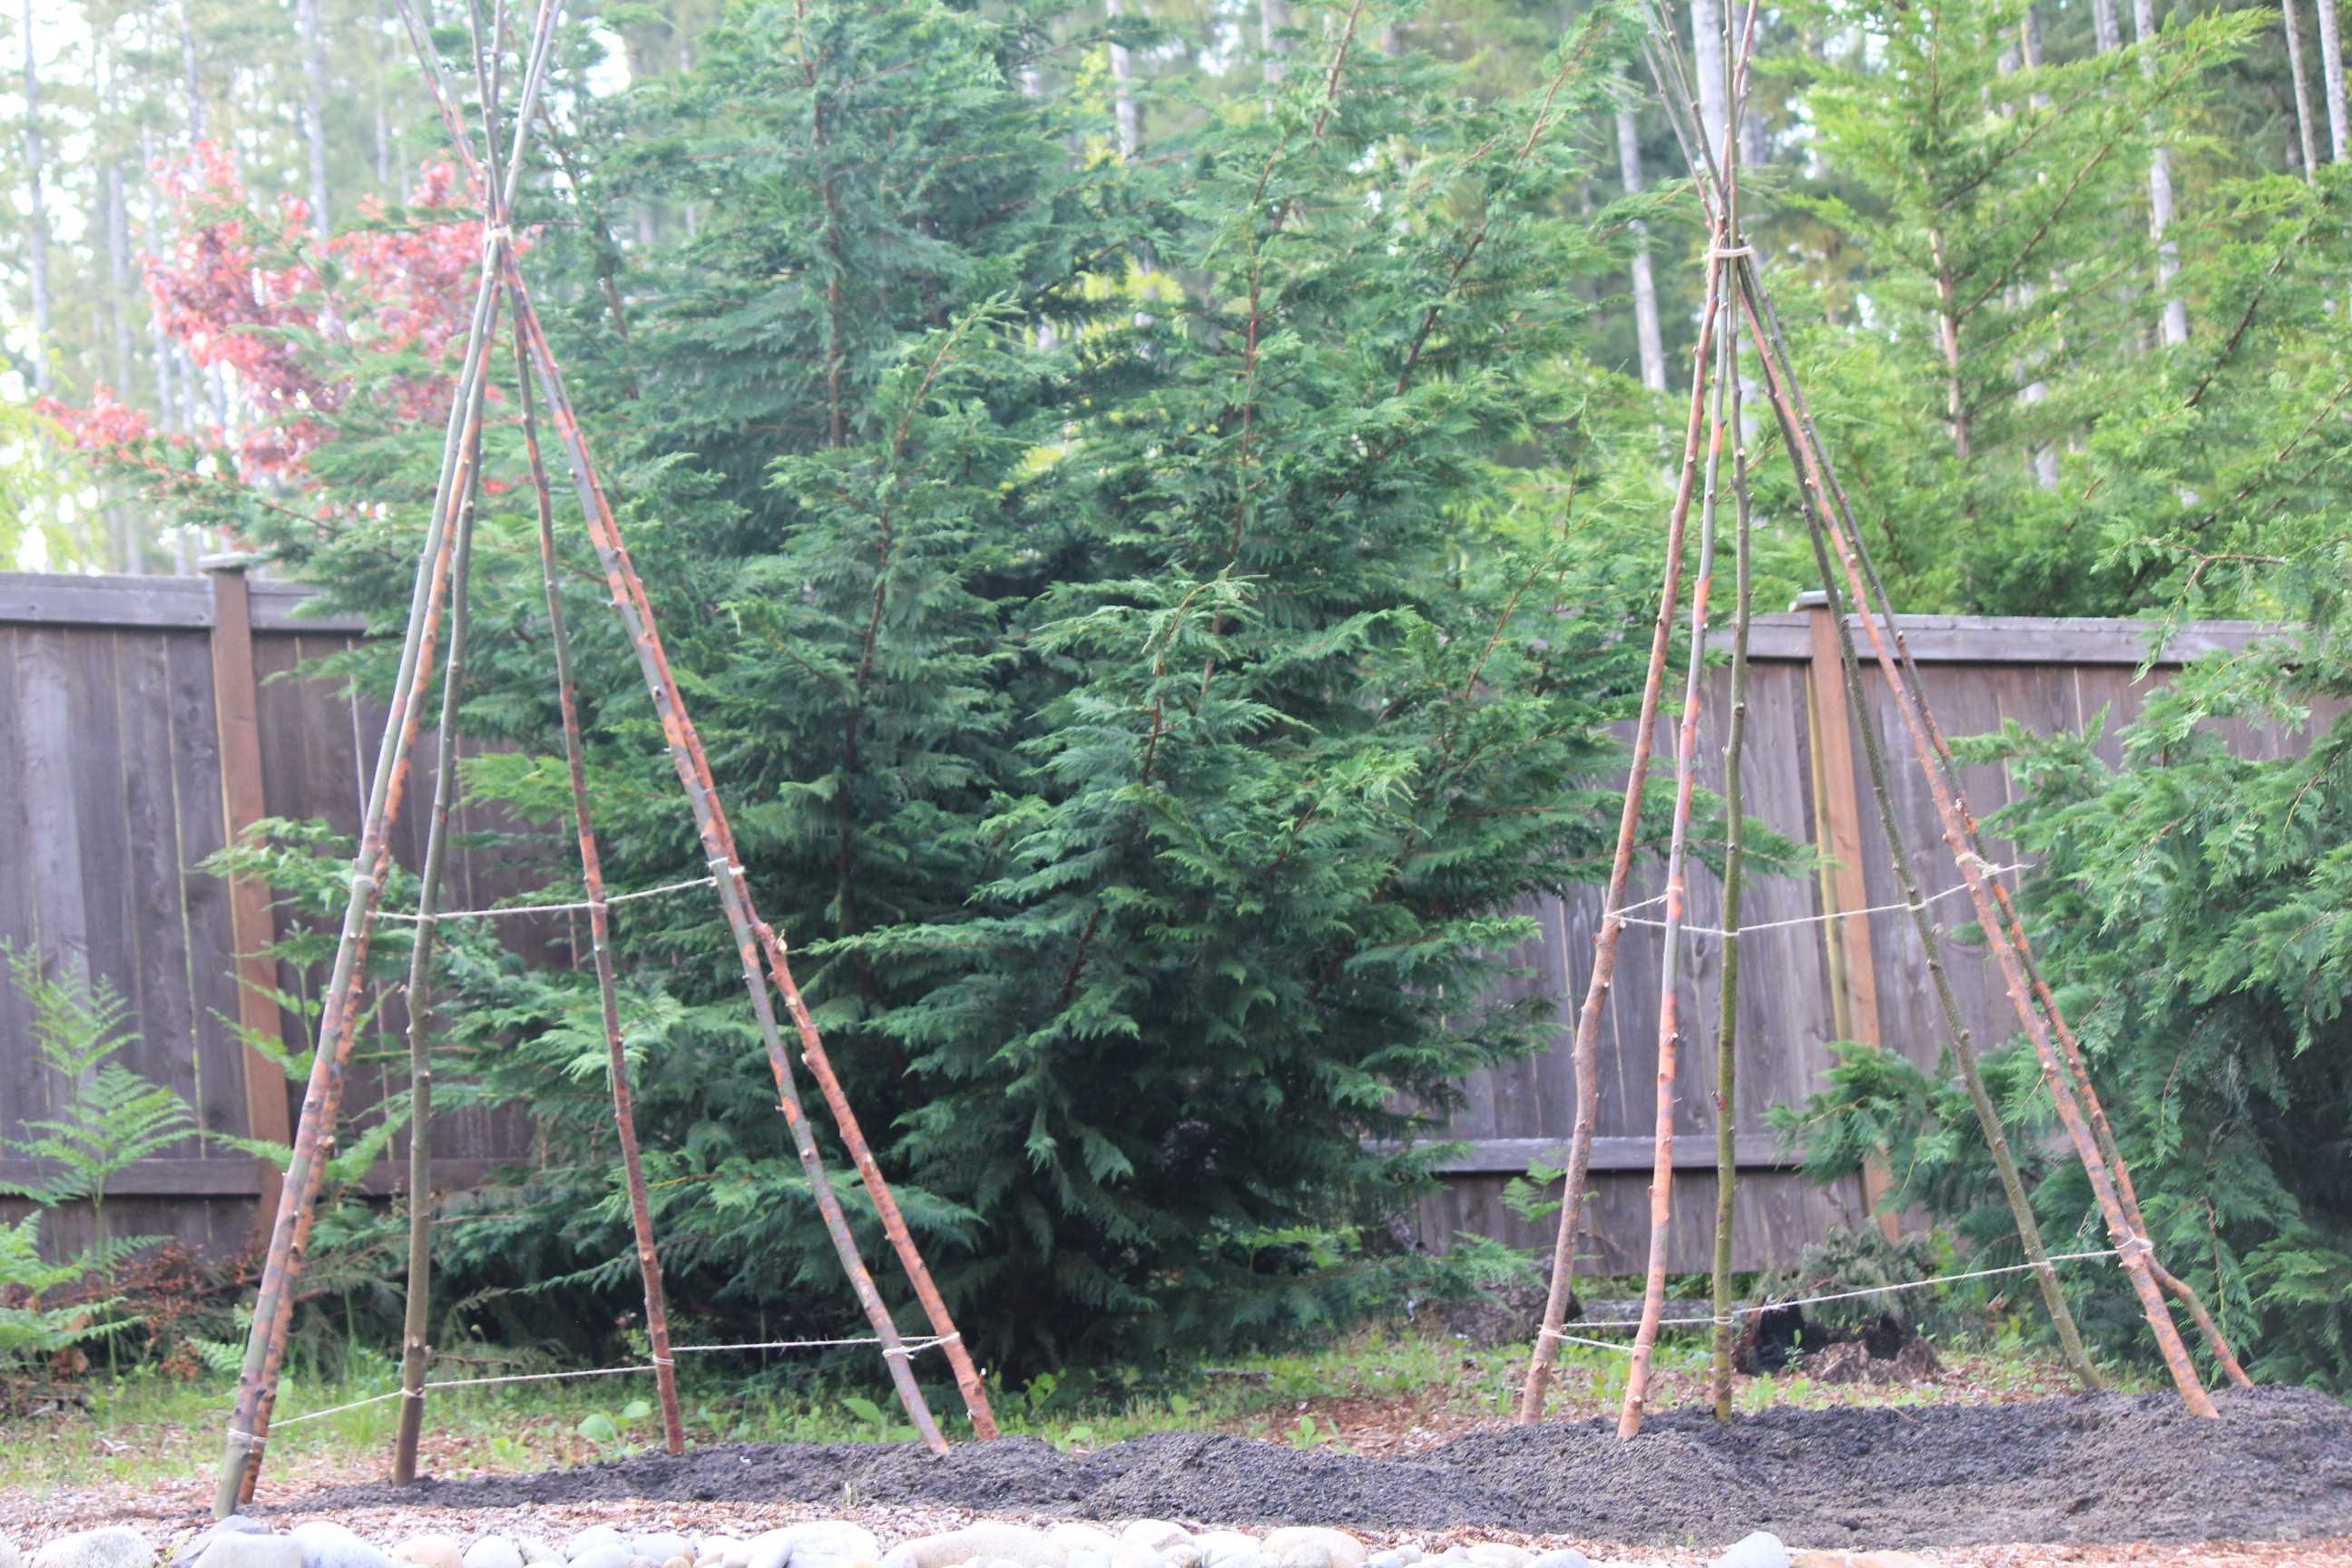 Garden Projects For Kids: How to Build a Bean Teepee